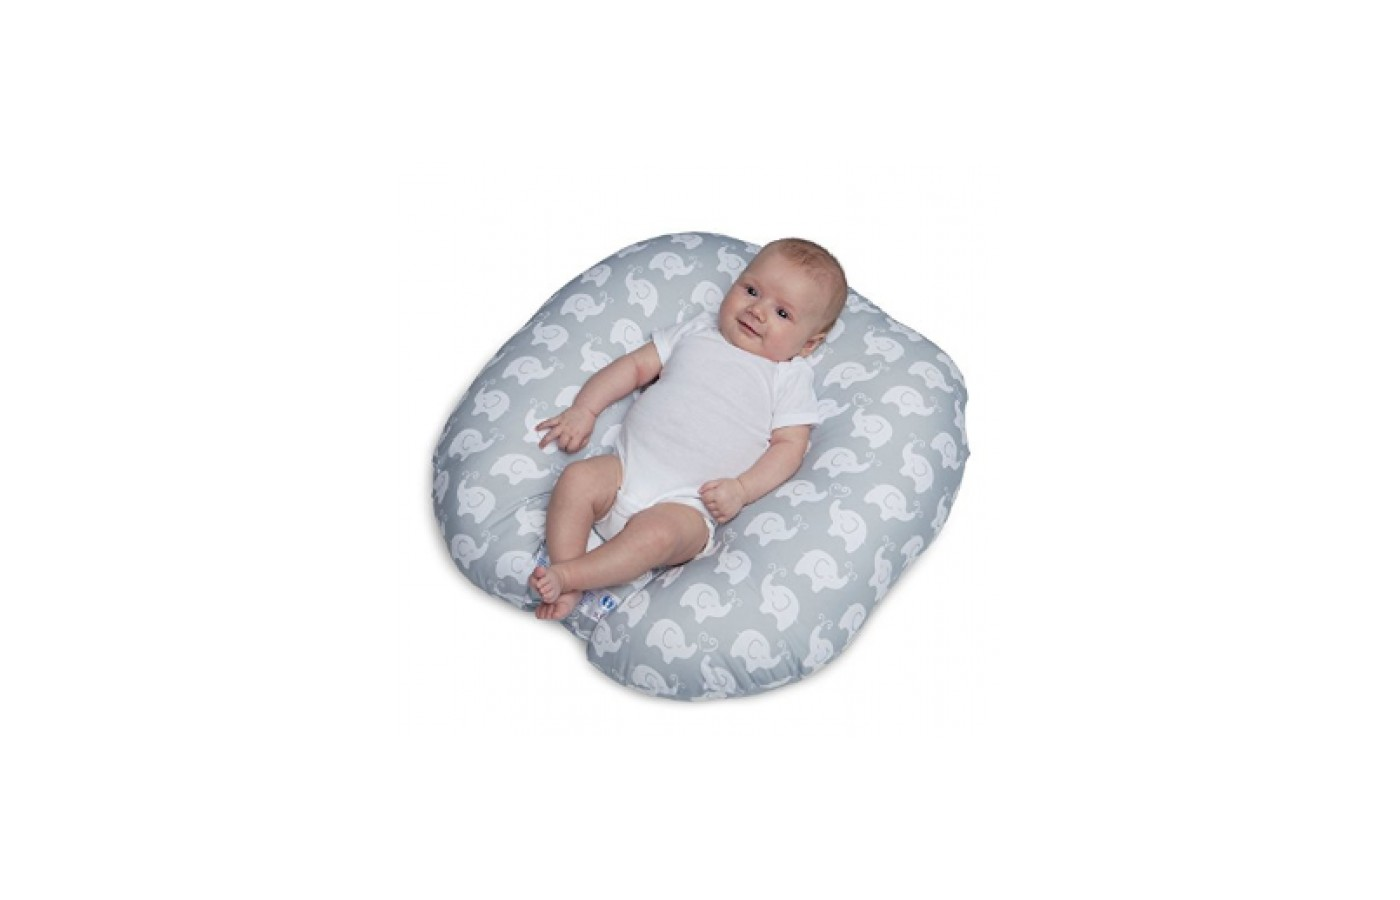 The Boppy Newborn Lounger is a safe & comfy space for a newborn.